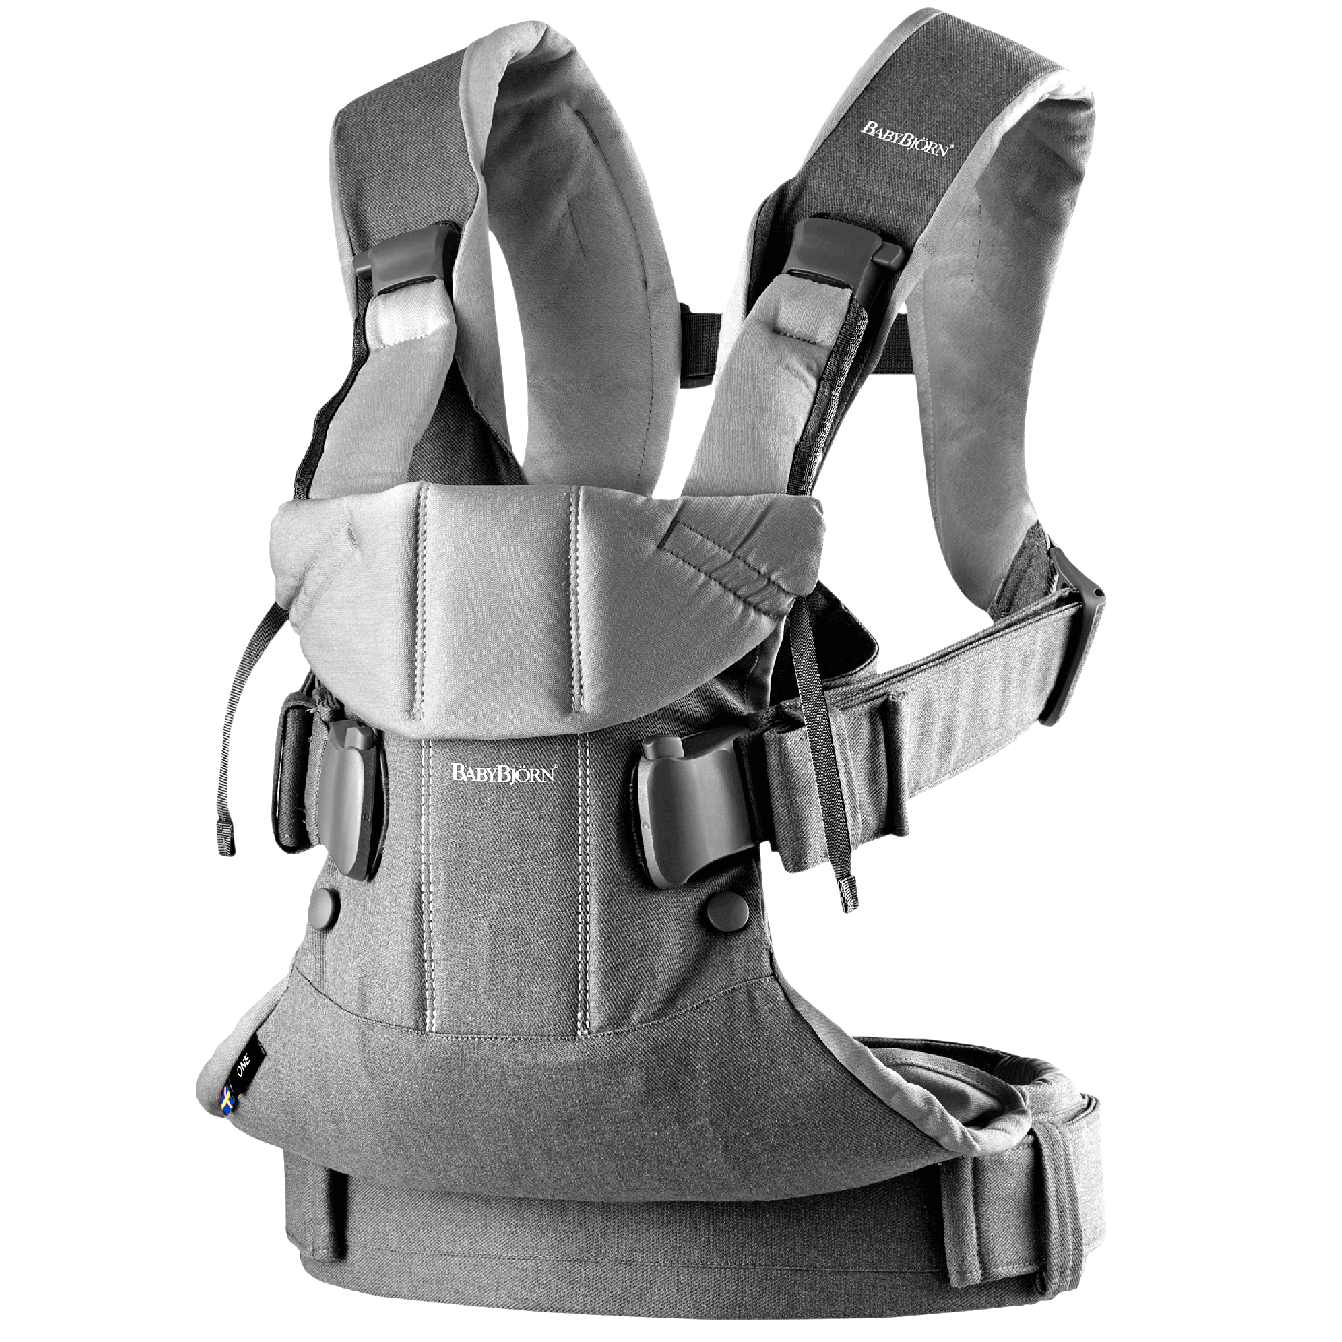 Baby Carrier One Denim Grey/Dark Grey Cotton Mix-098094-BABYBJÖRN-startpage-1342